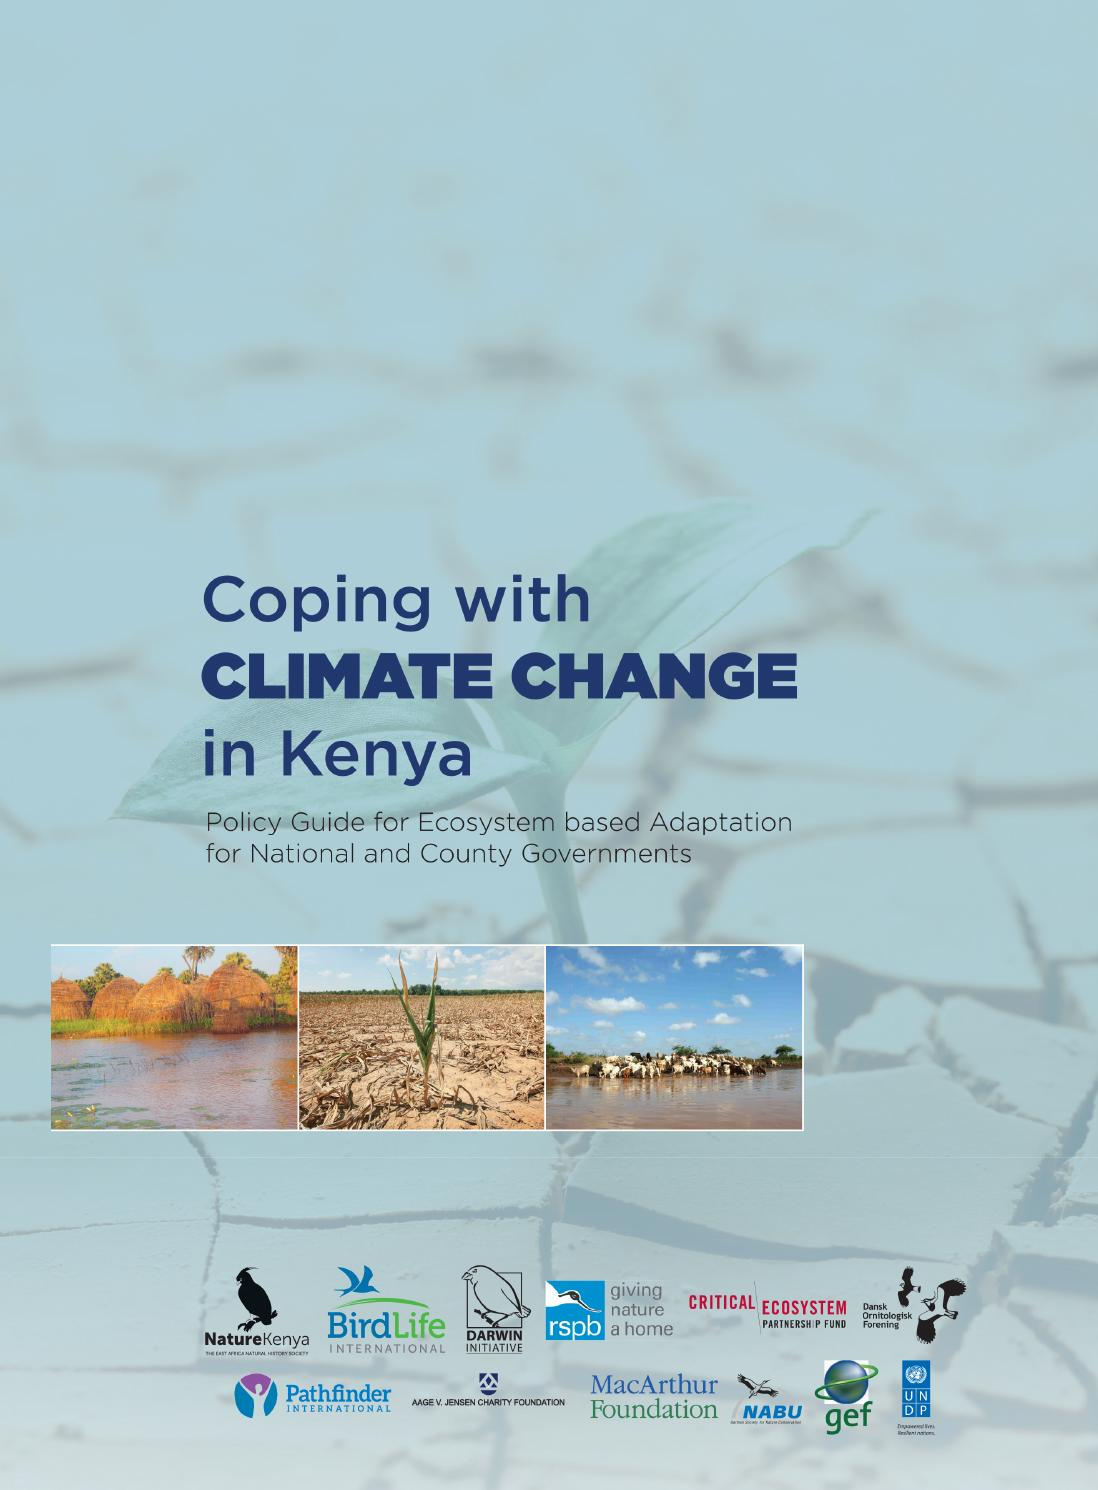 Coping with Climate Change in Kenya by Nature Kenya